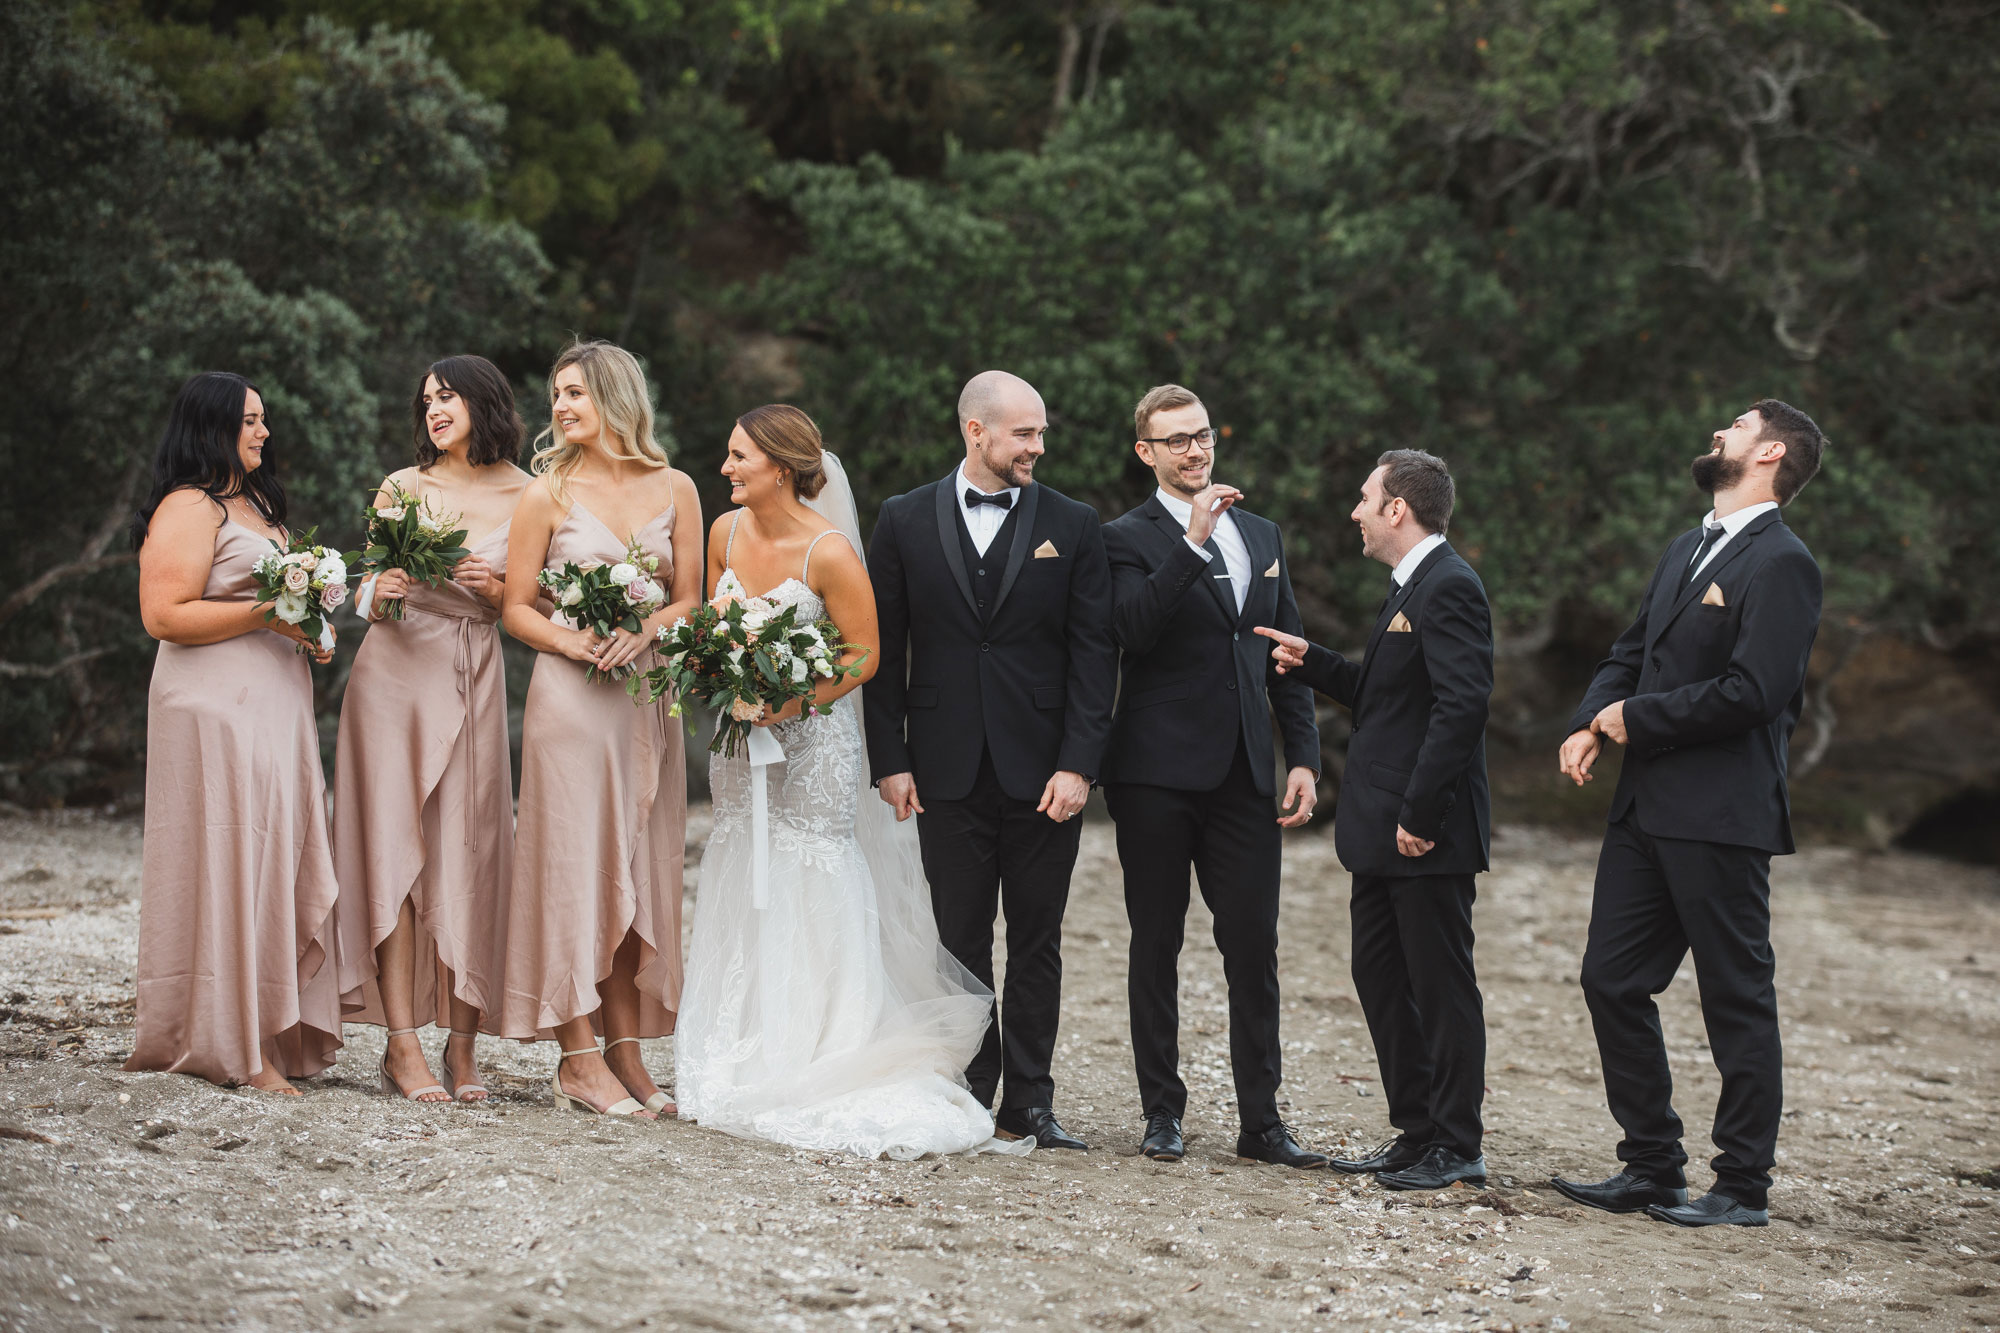 auckland bridal party photo